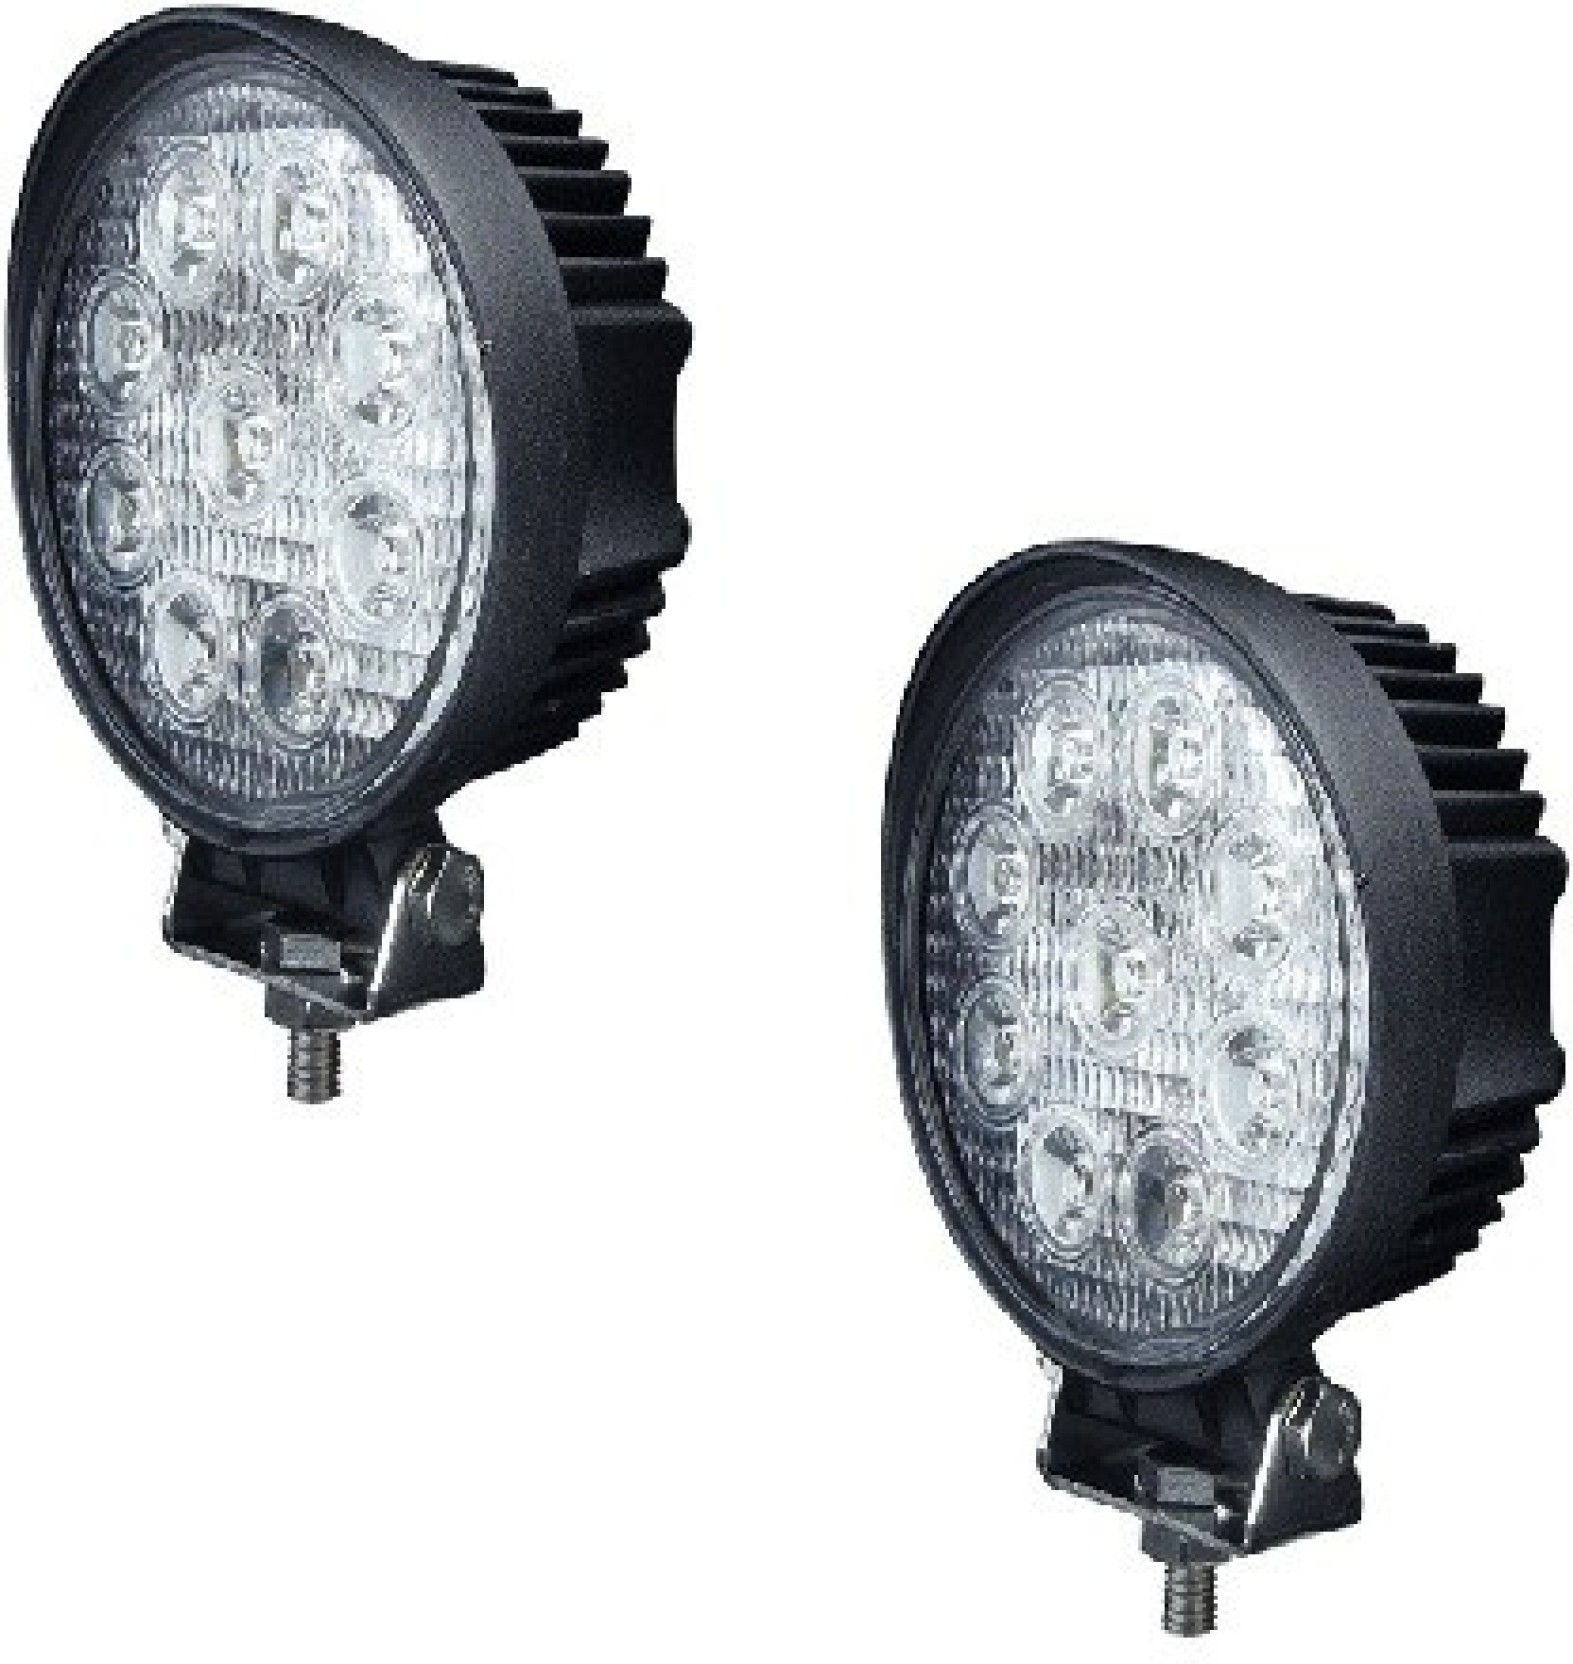 A2d Led Fog Lamp Unit For Hyundai Santro Xing Price In India Buy Wiring Diagram Share